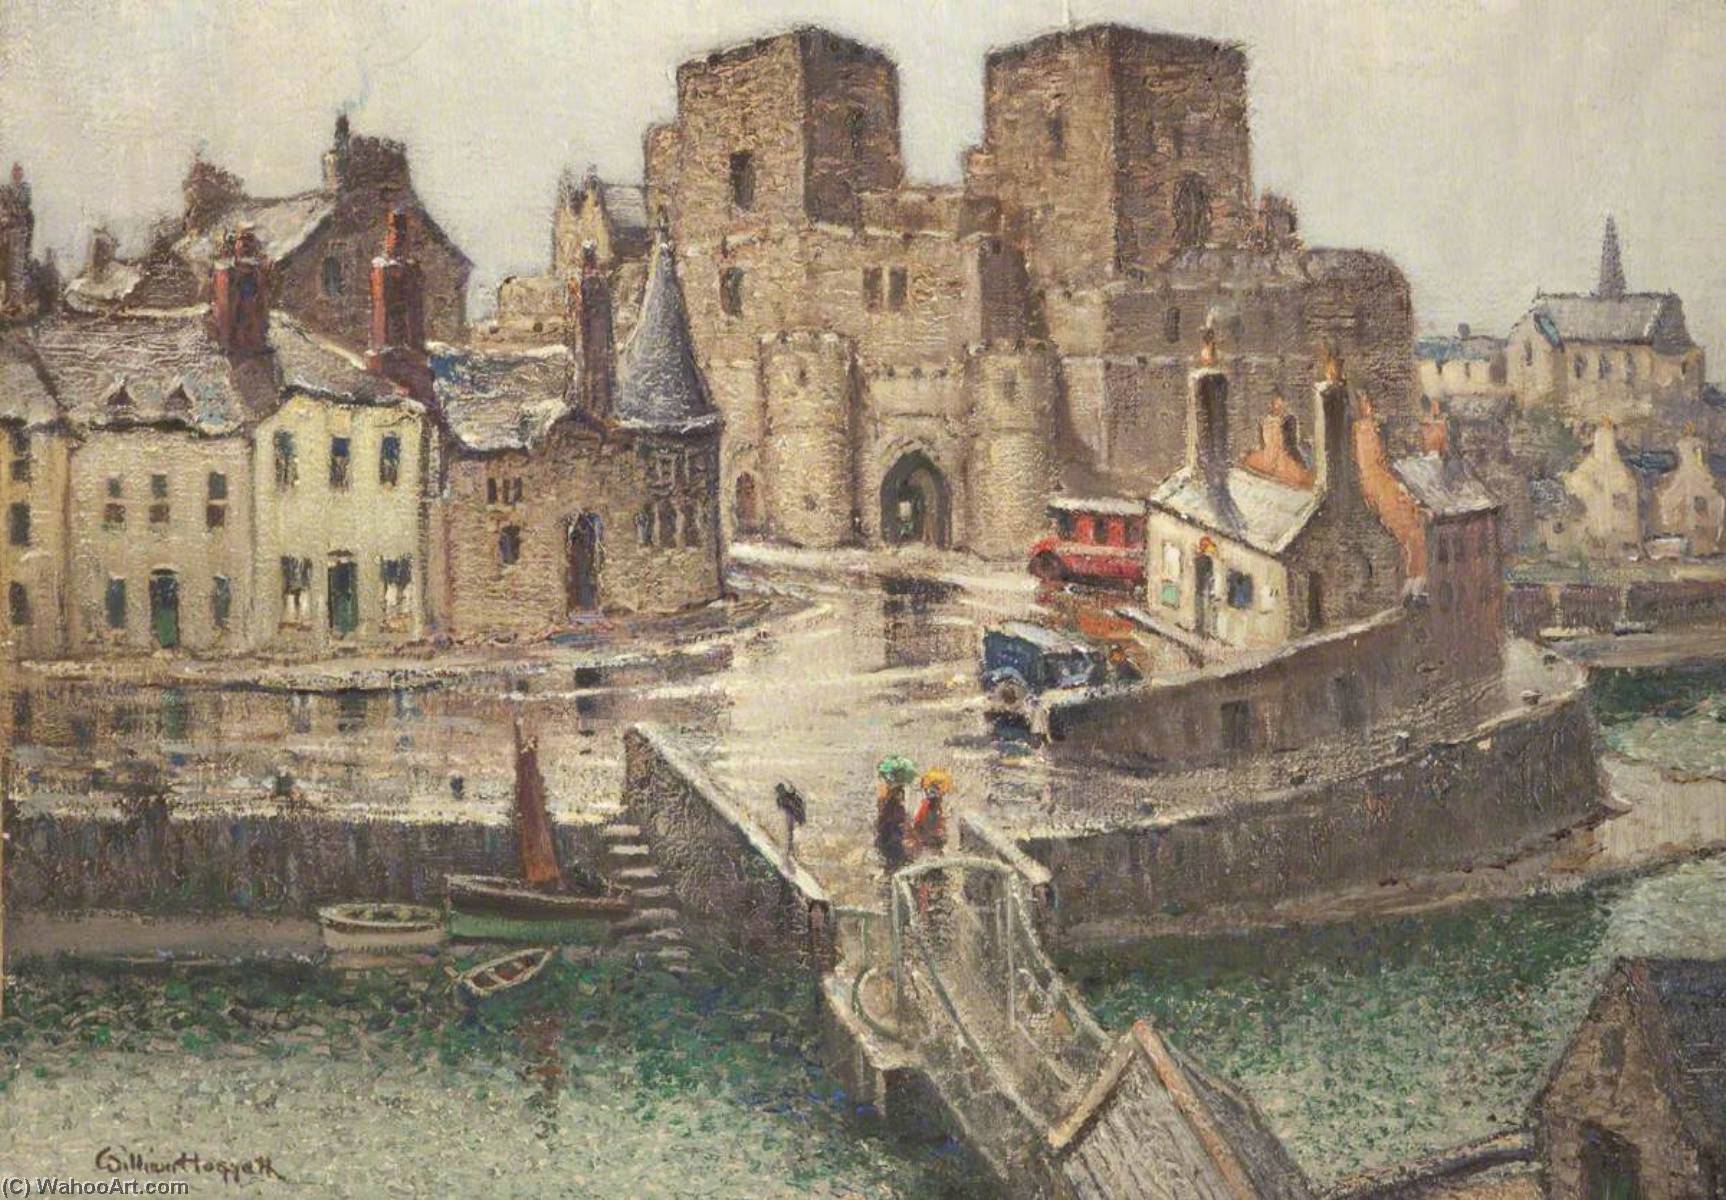 Wikioo.org - The Encyclopedia of Fine Arts - Painting, Artwork by William Hoggatt - Castle Rushen from the Bridge House